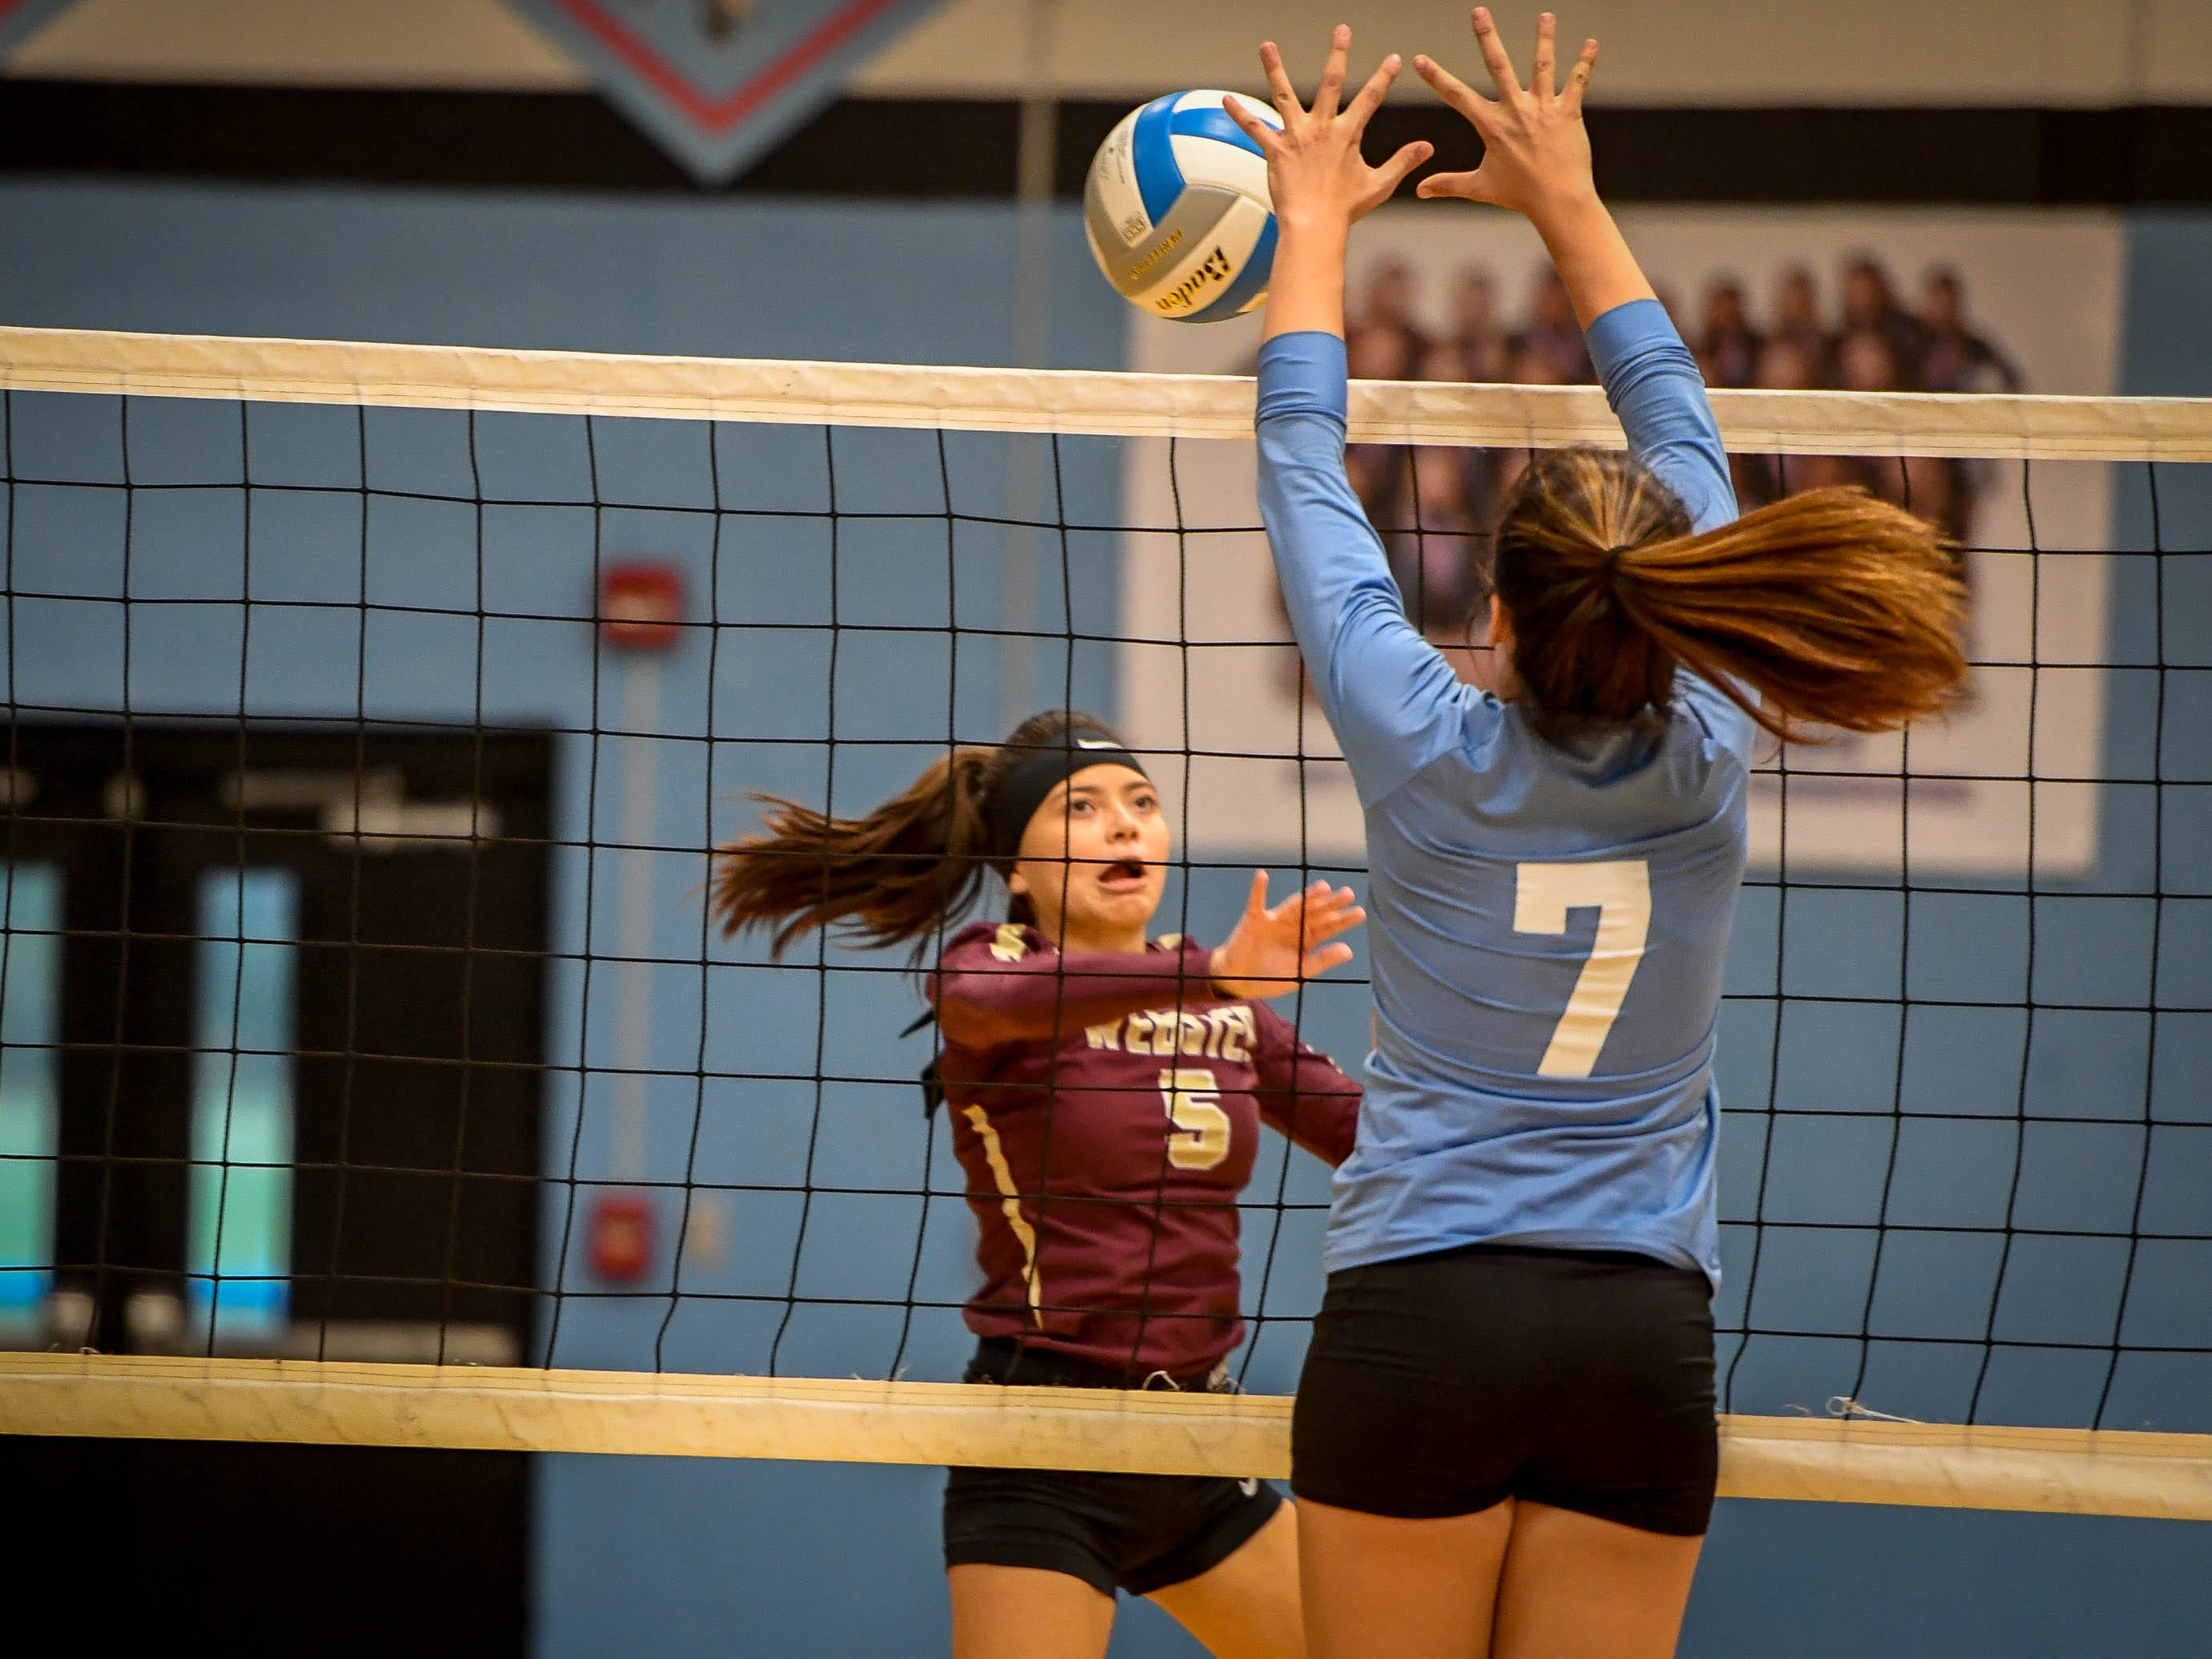 Webster's Adrianna Lopez (5)  and Union's Emily Hibbs (7) battle at the net as the Webster County Lady Trojans play the Union County Bravettes in the District Volleyball Tournament in Morganfield, Tuesday, October 9, 2018.